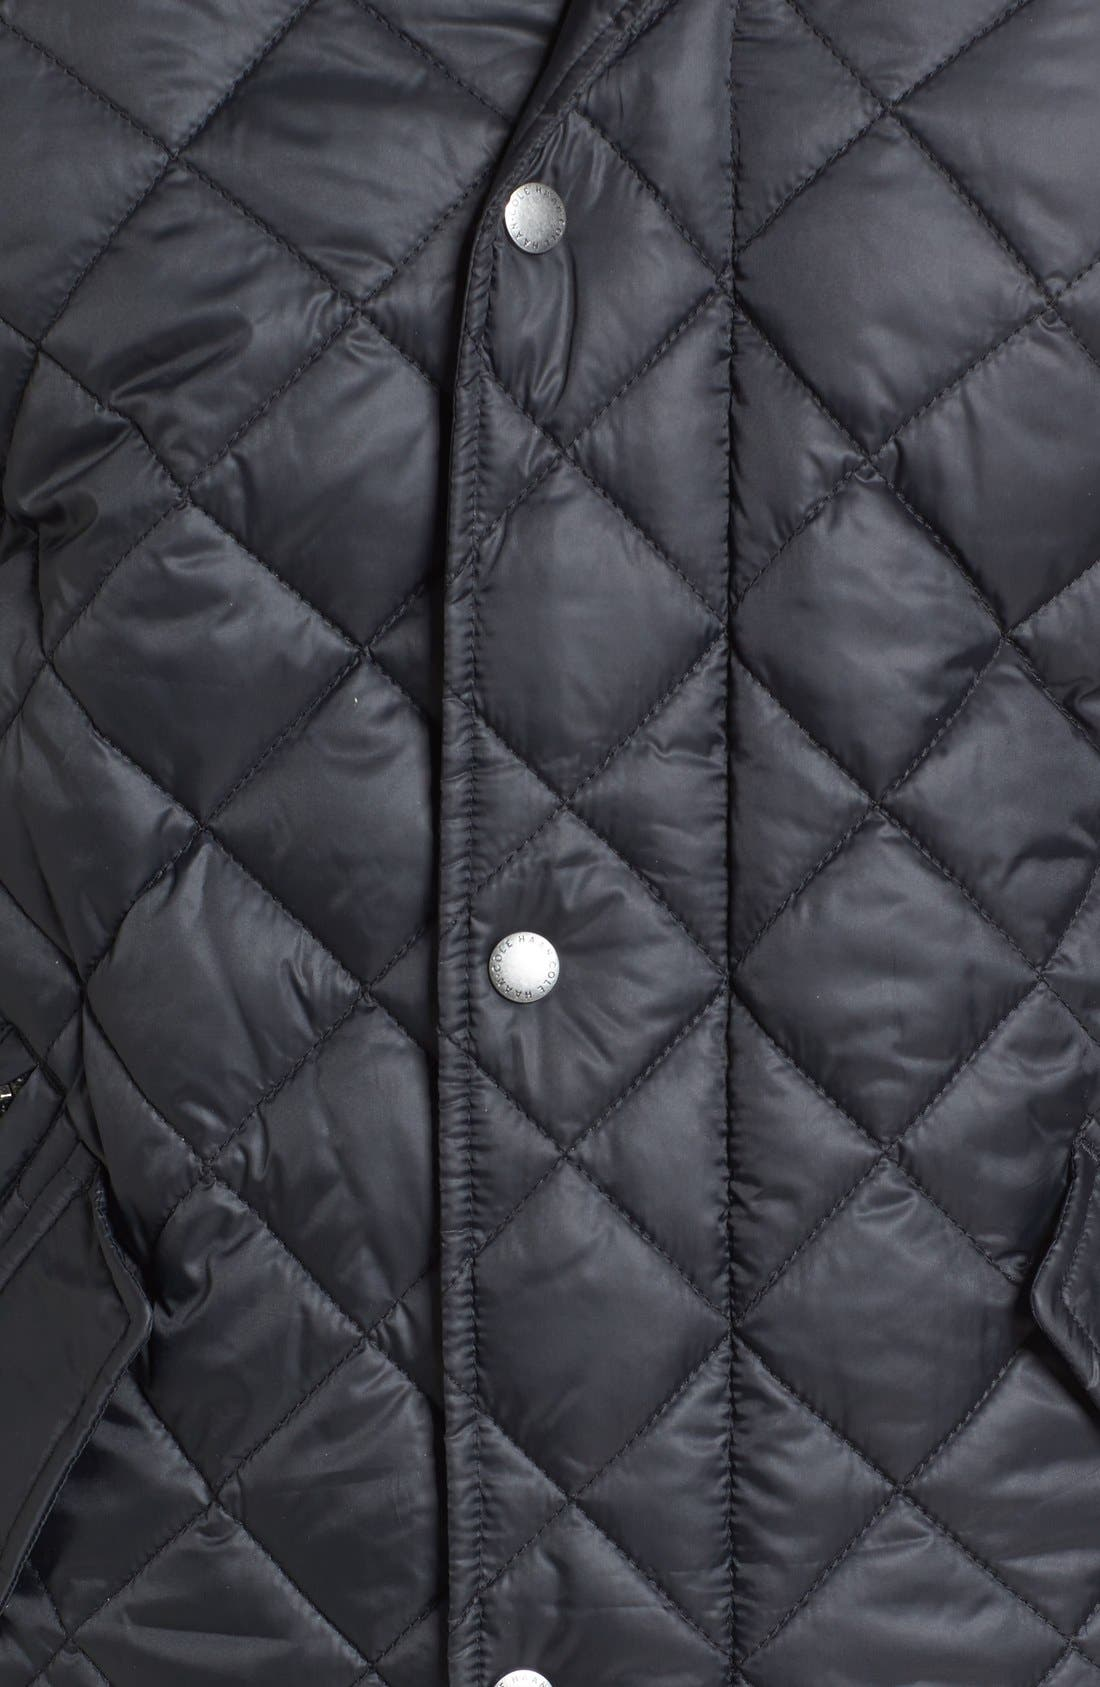 Diamond Quilted Jacket,                             Alternate thumbnail 15, color,                             Navy